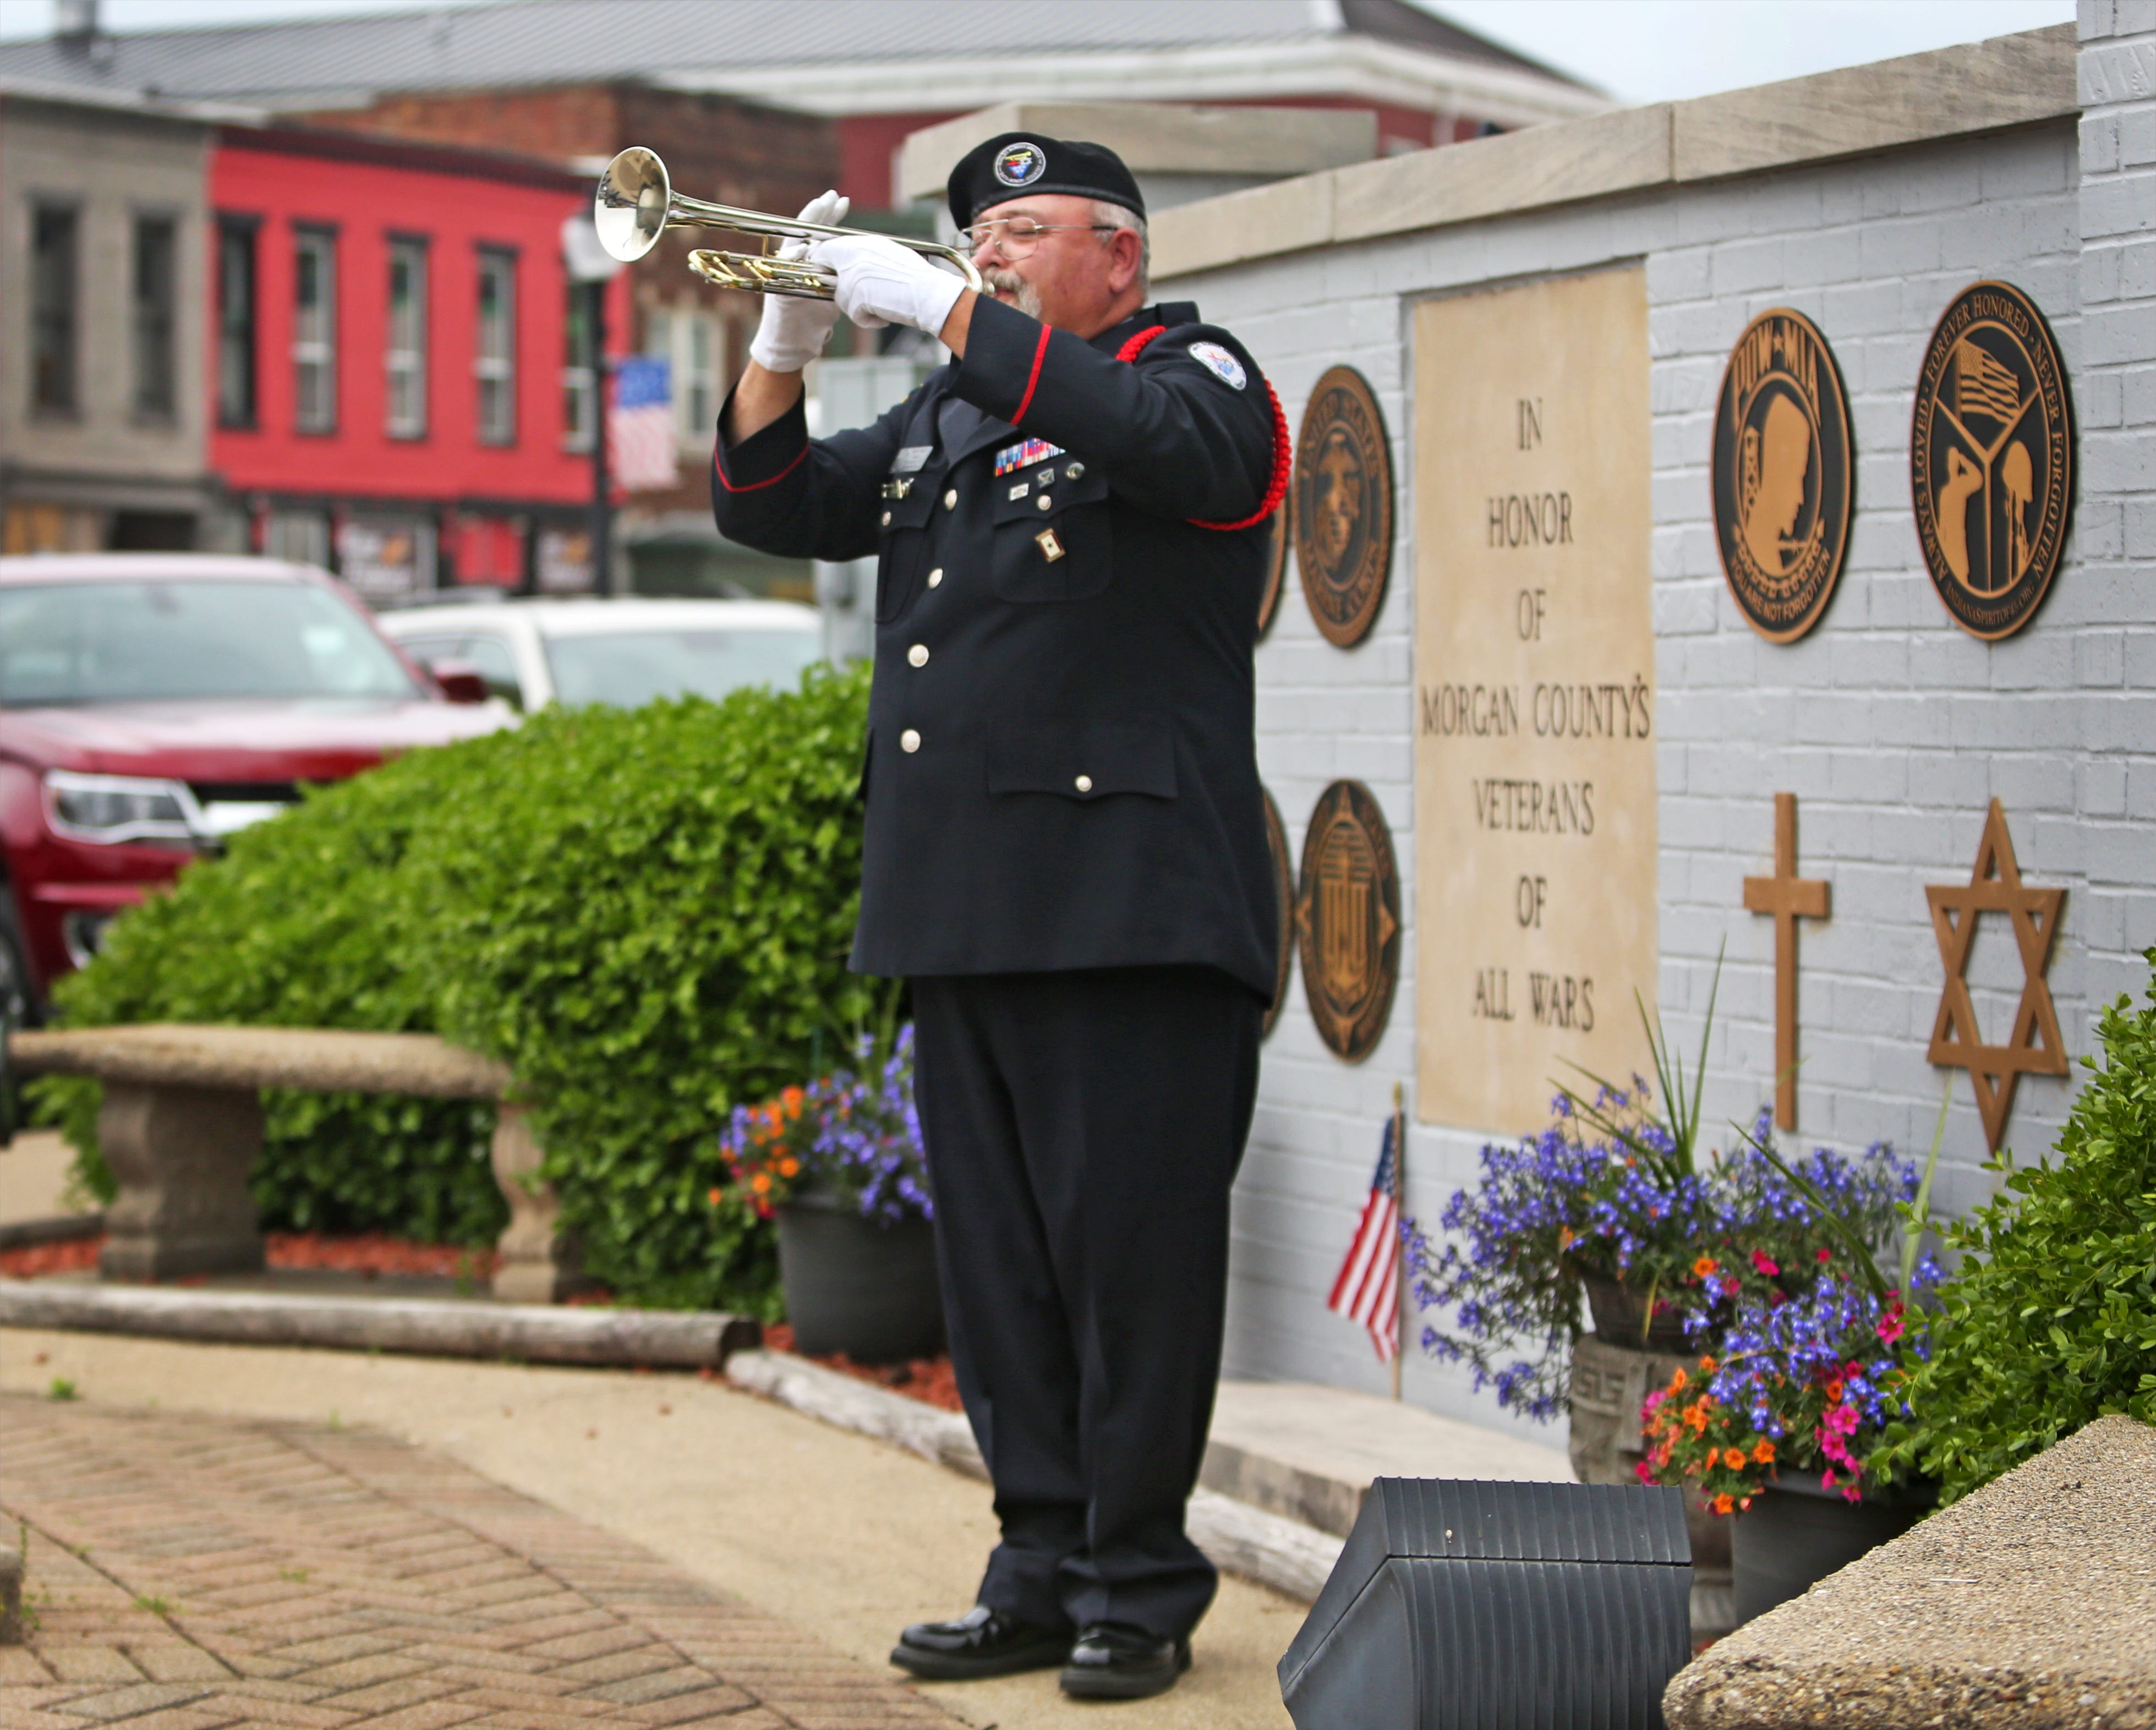 'The sound of Taps comes directly from the heart'